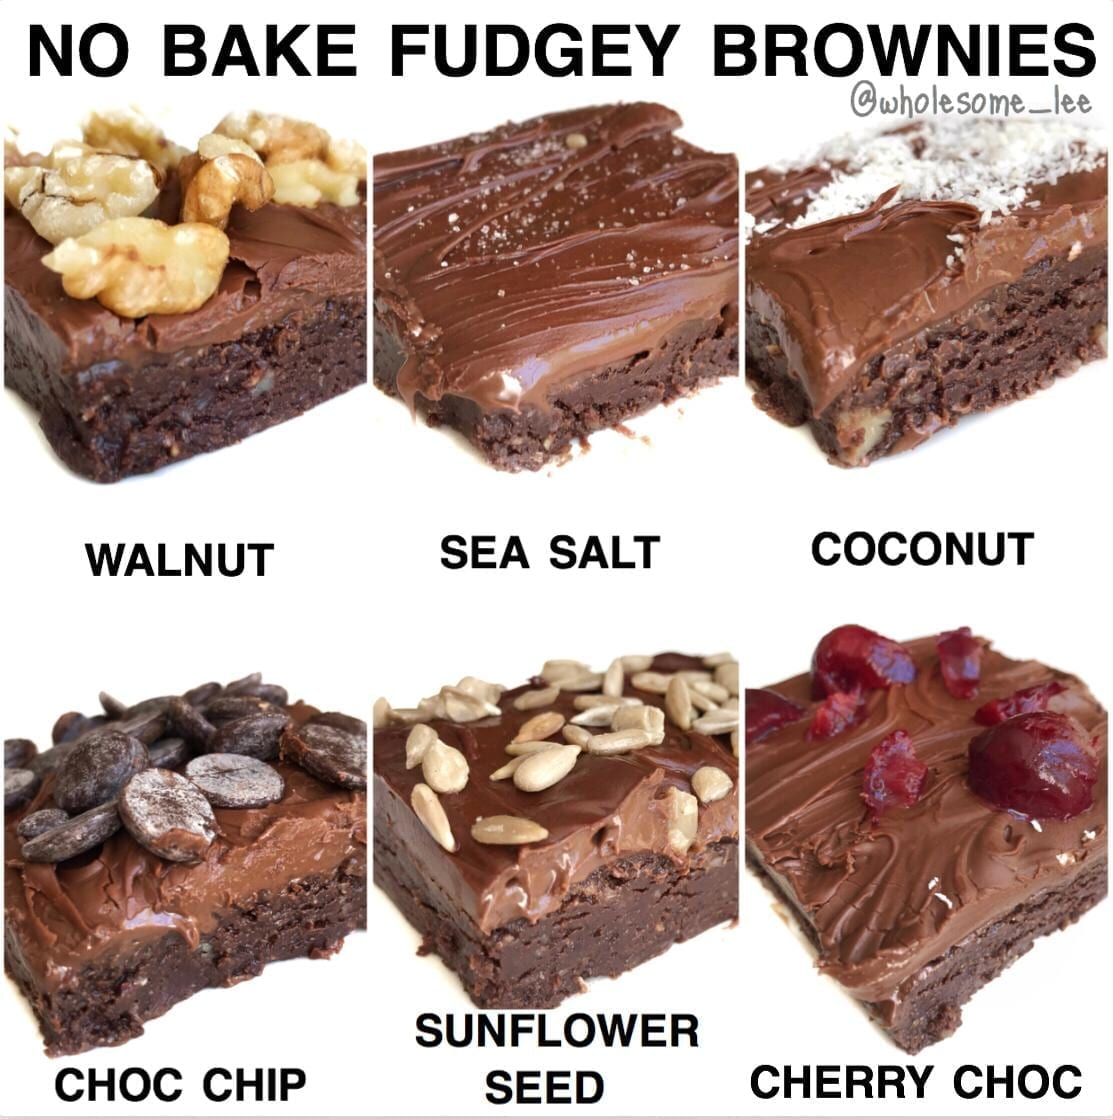 No Bake Fudgey Brownies